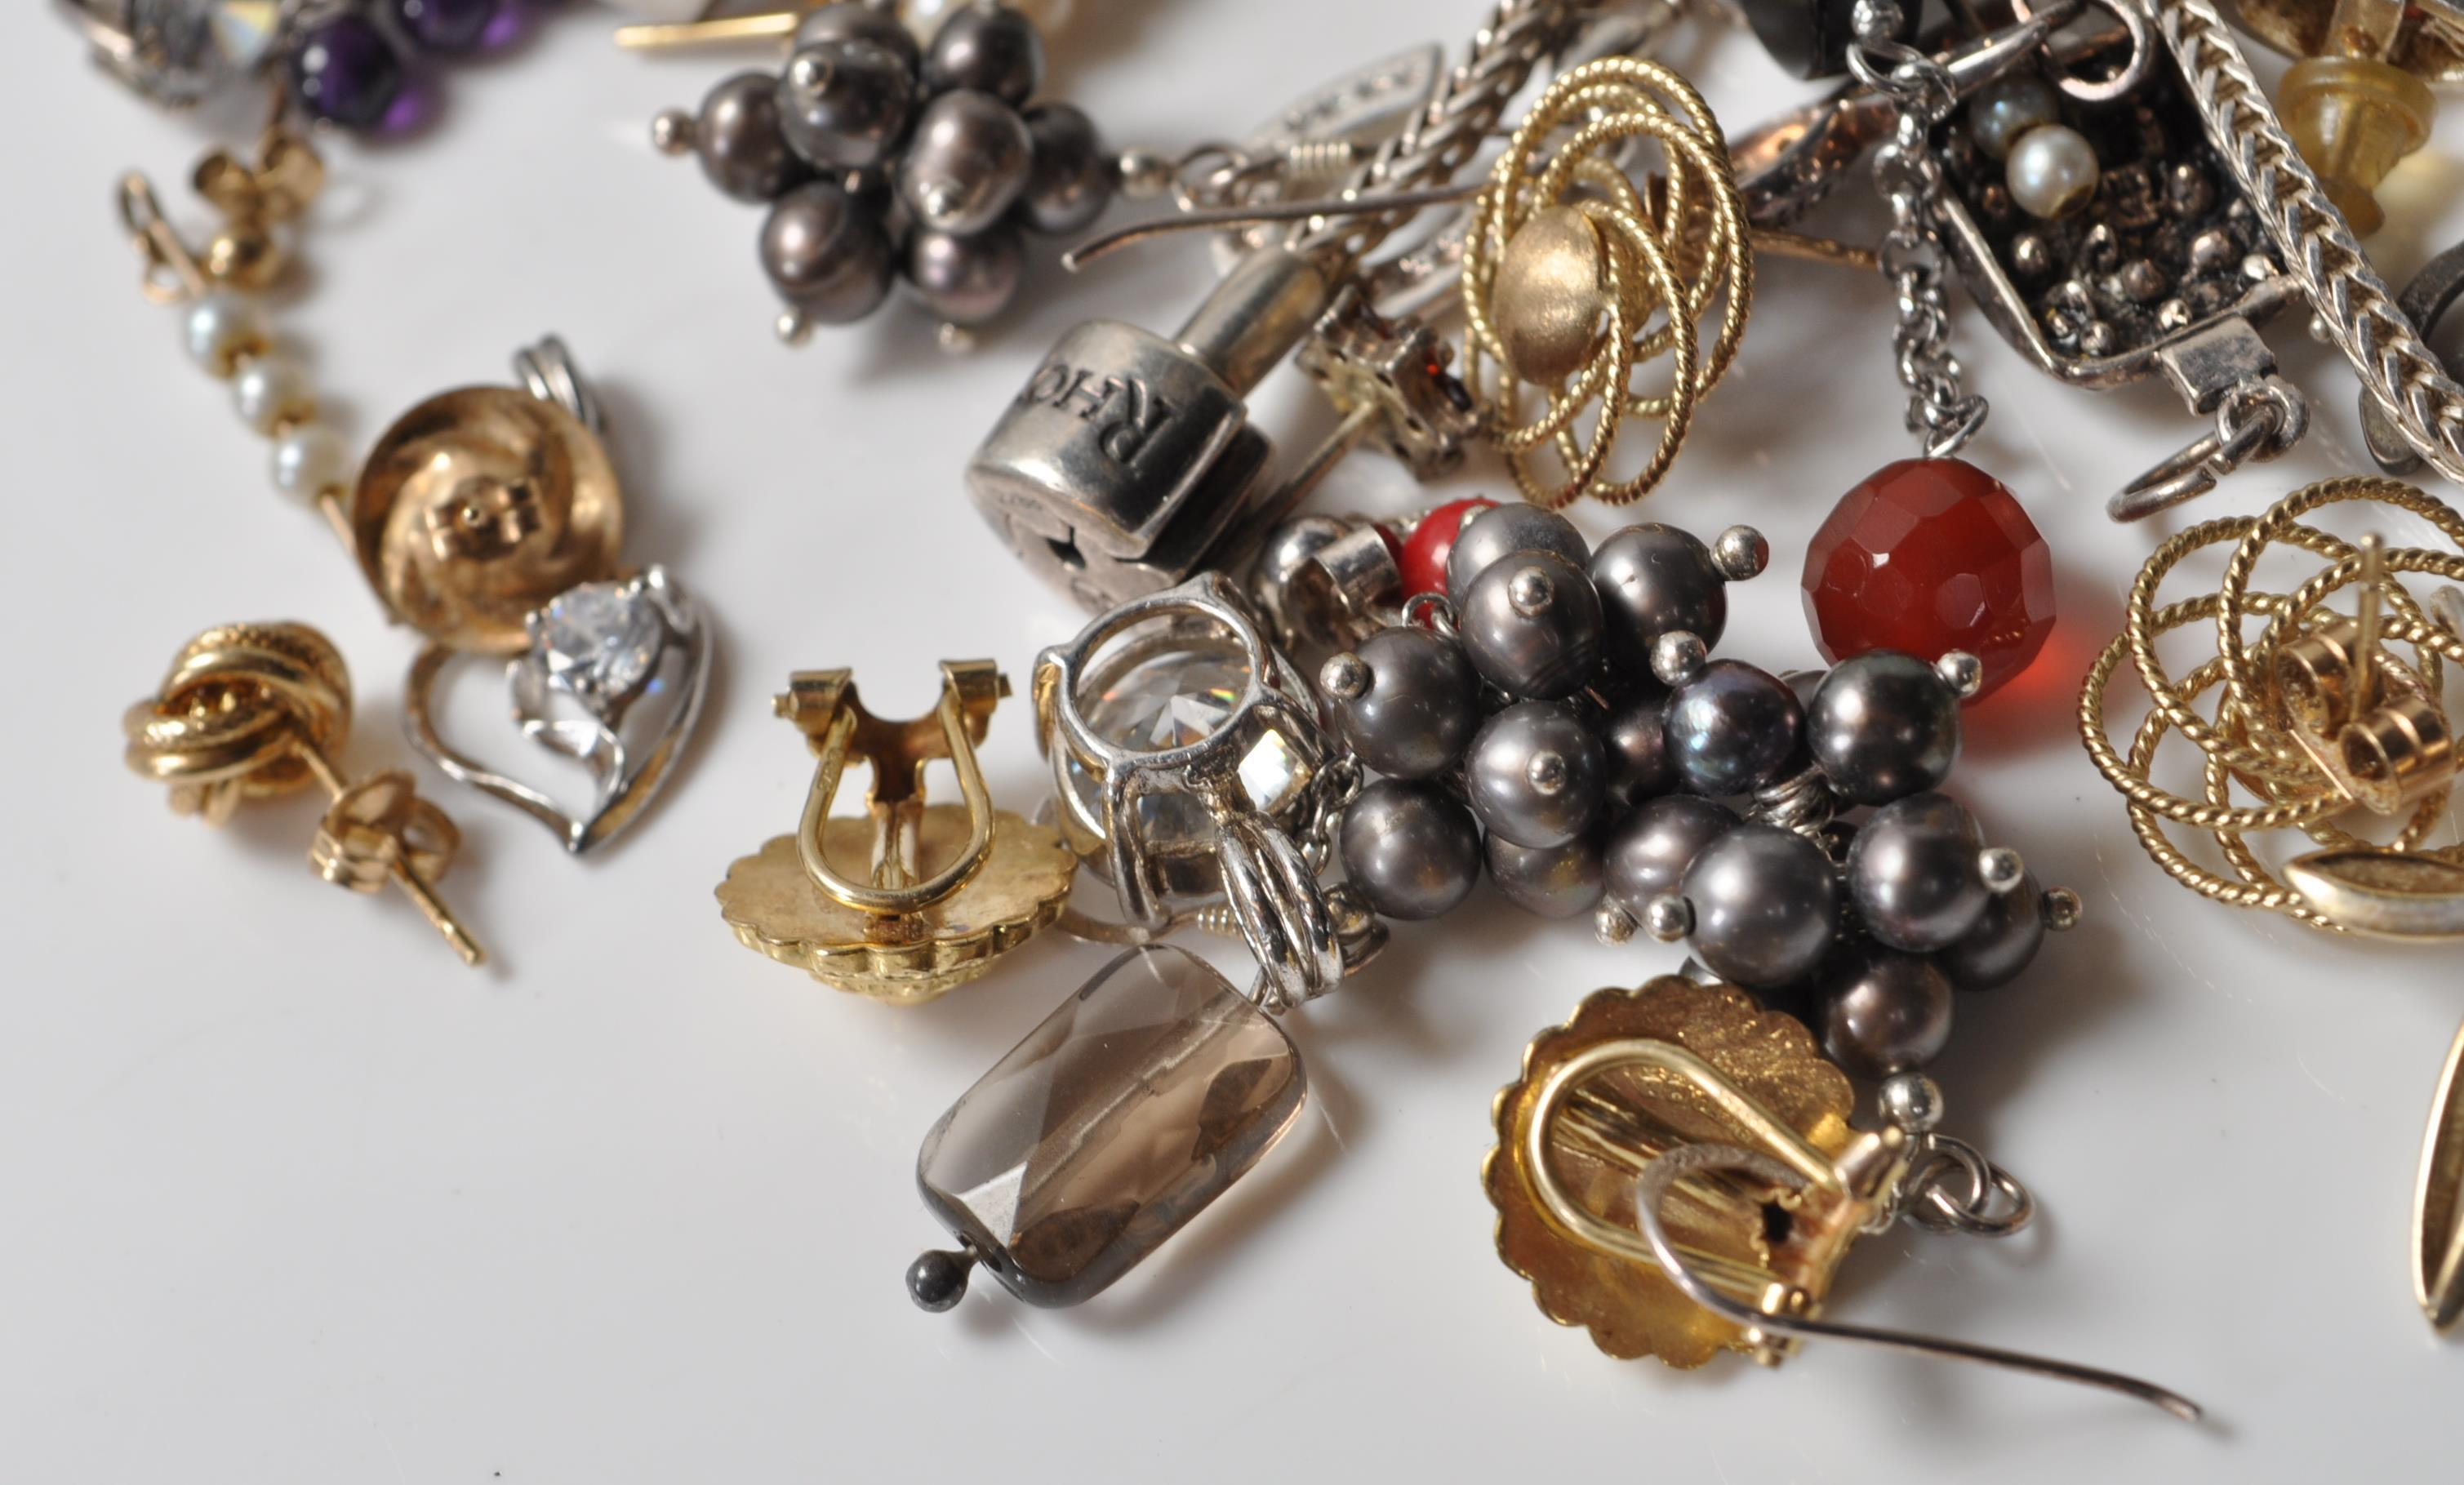 COLLECTION OF SILVER STAMPED 925 EARRINGS AND PENDANTS. - Image 2 of 5